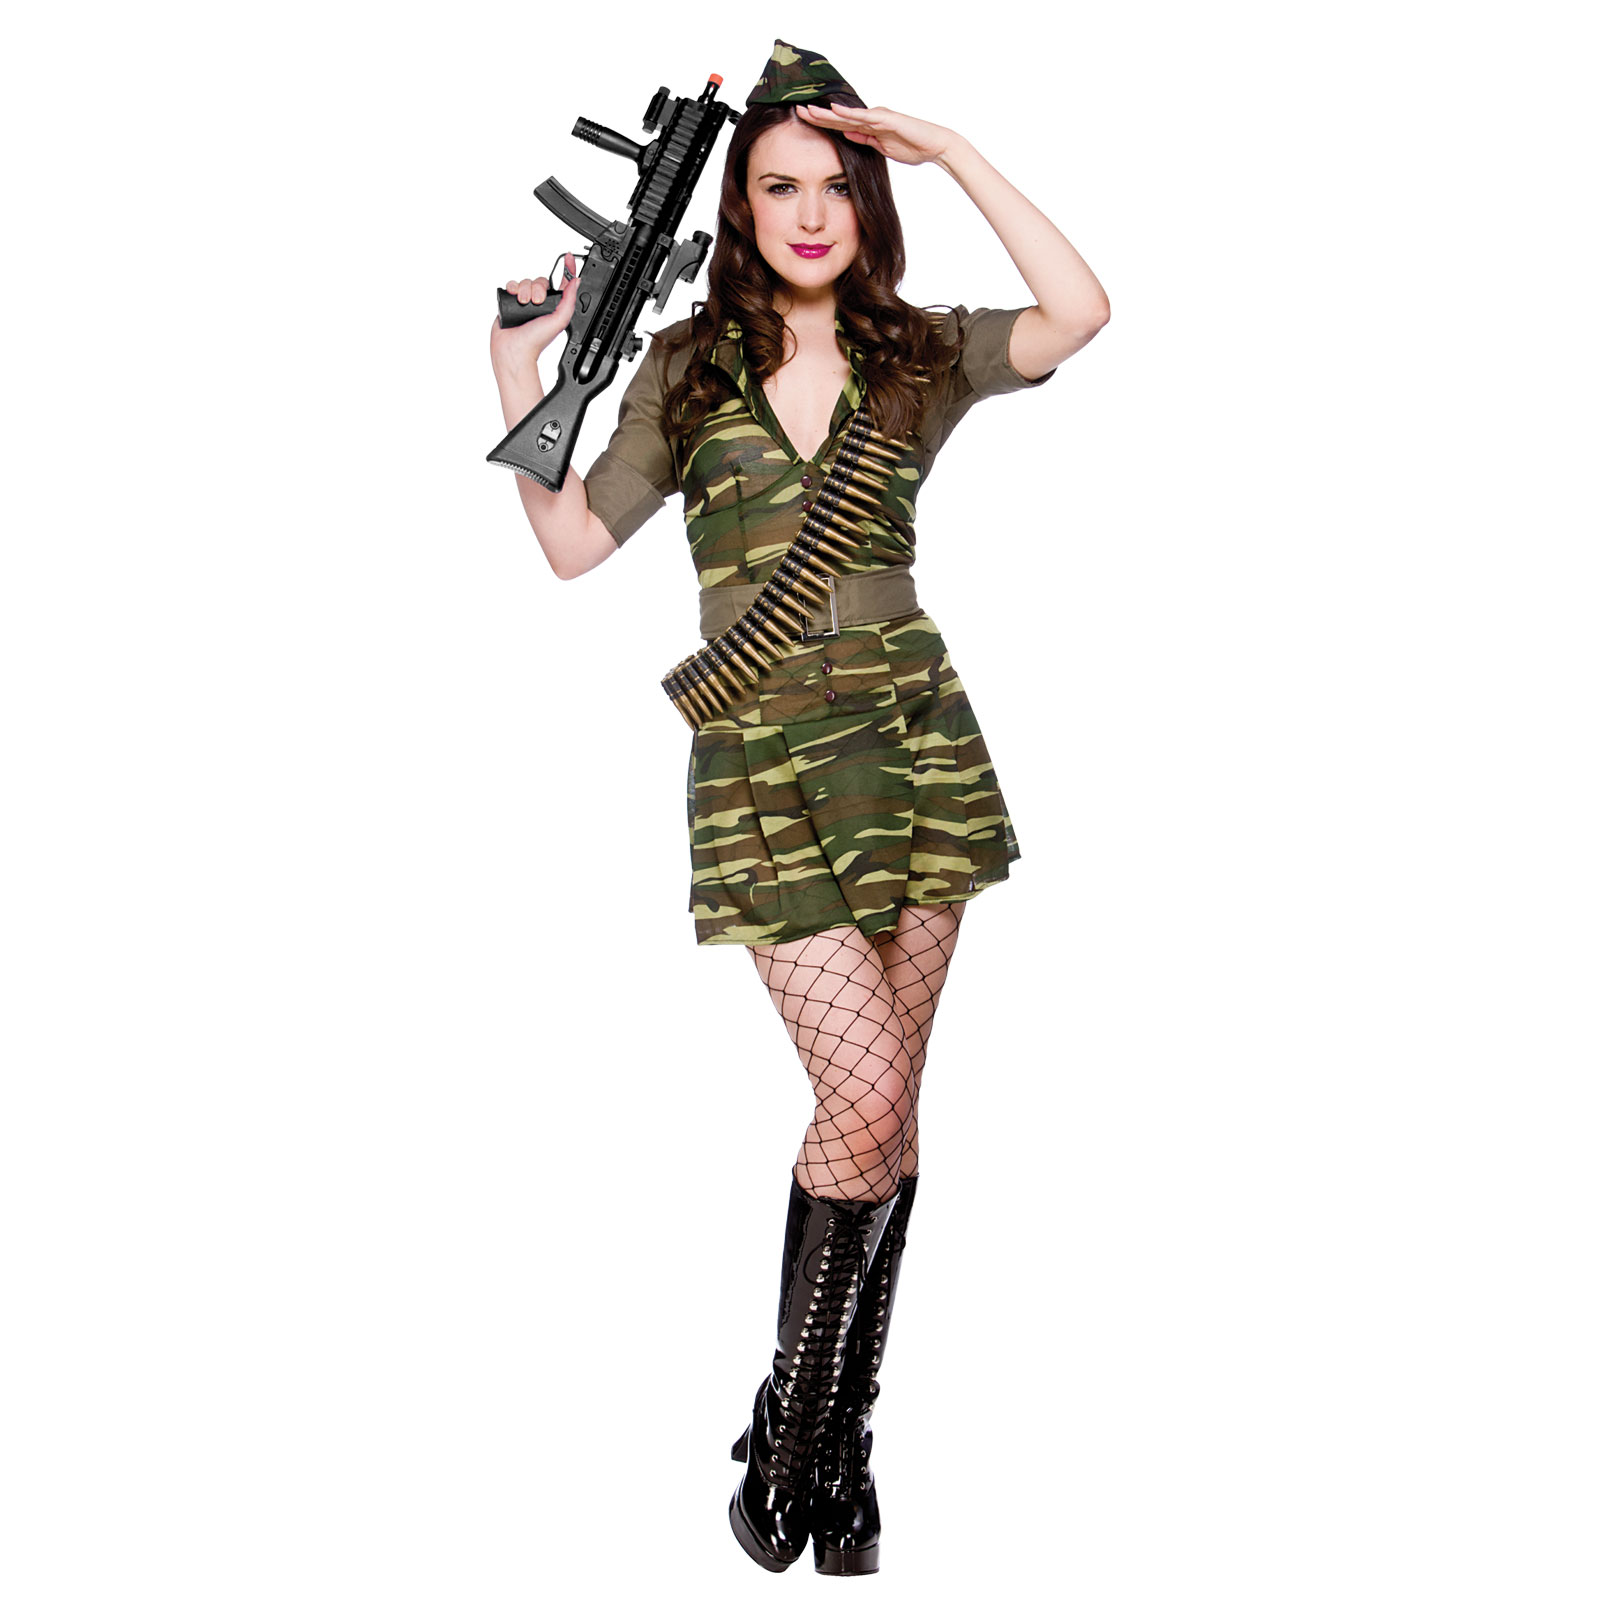 sexy army soldier combat girl private tease fancy dress party halloween costume - Soldier Girl Halloween Costume